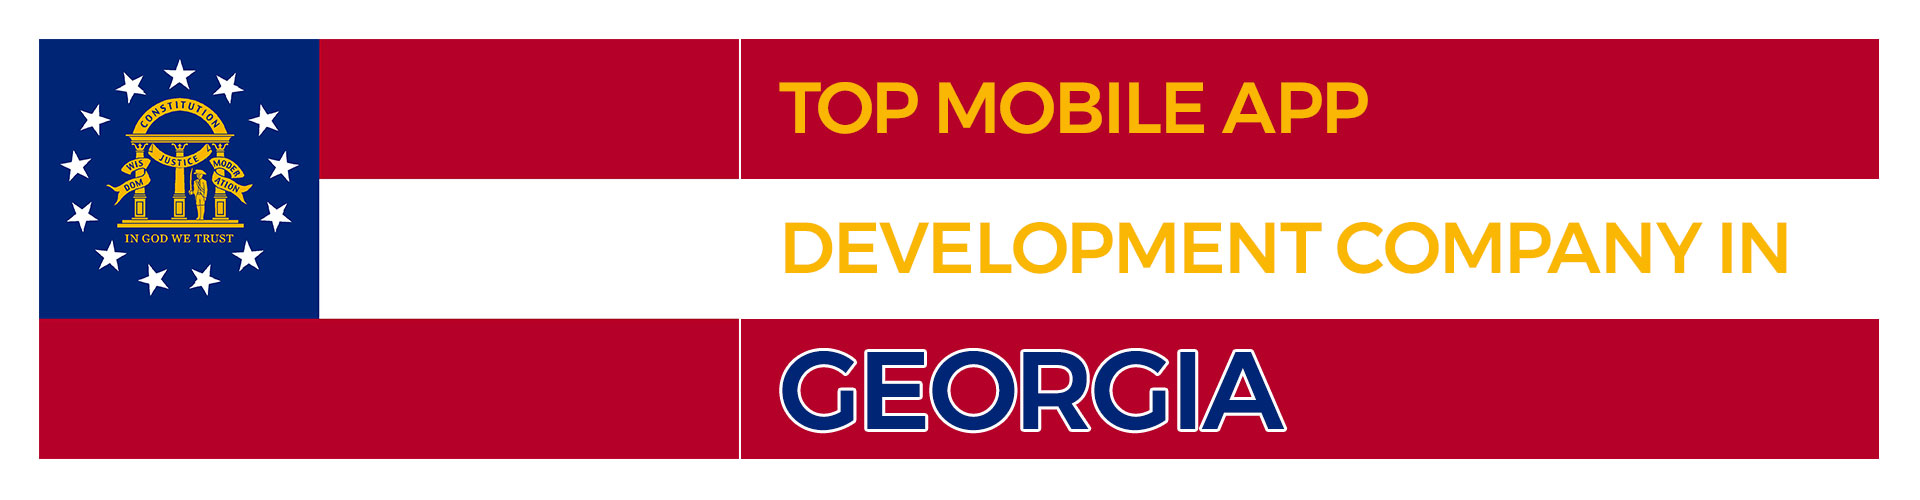 mobile app development company georgia